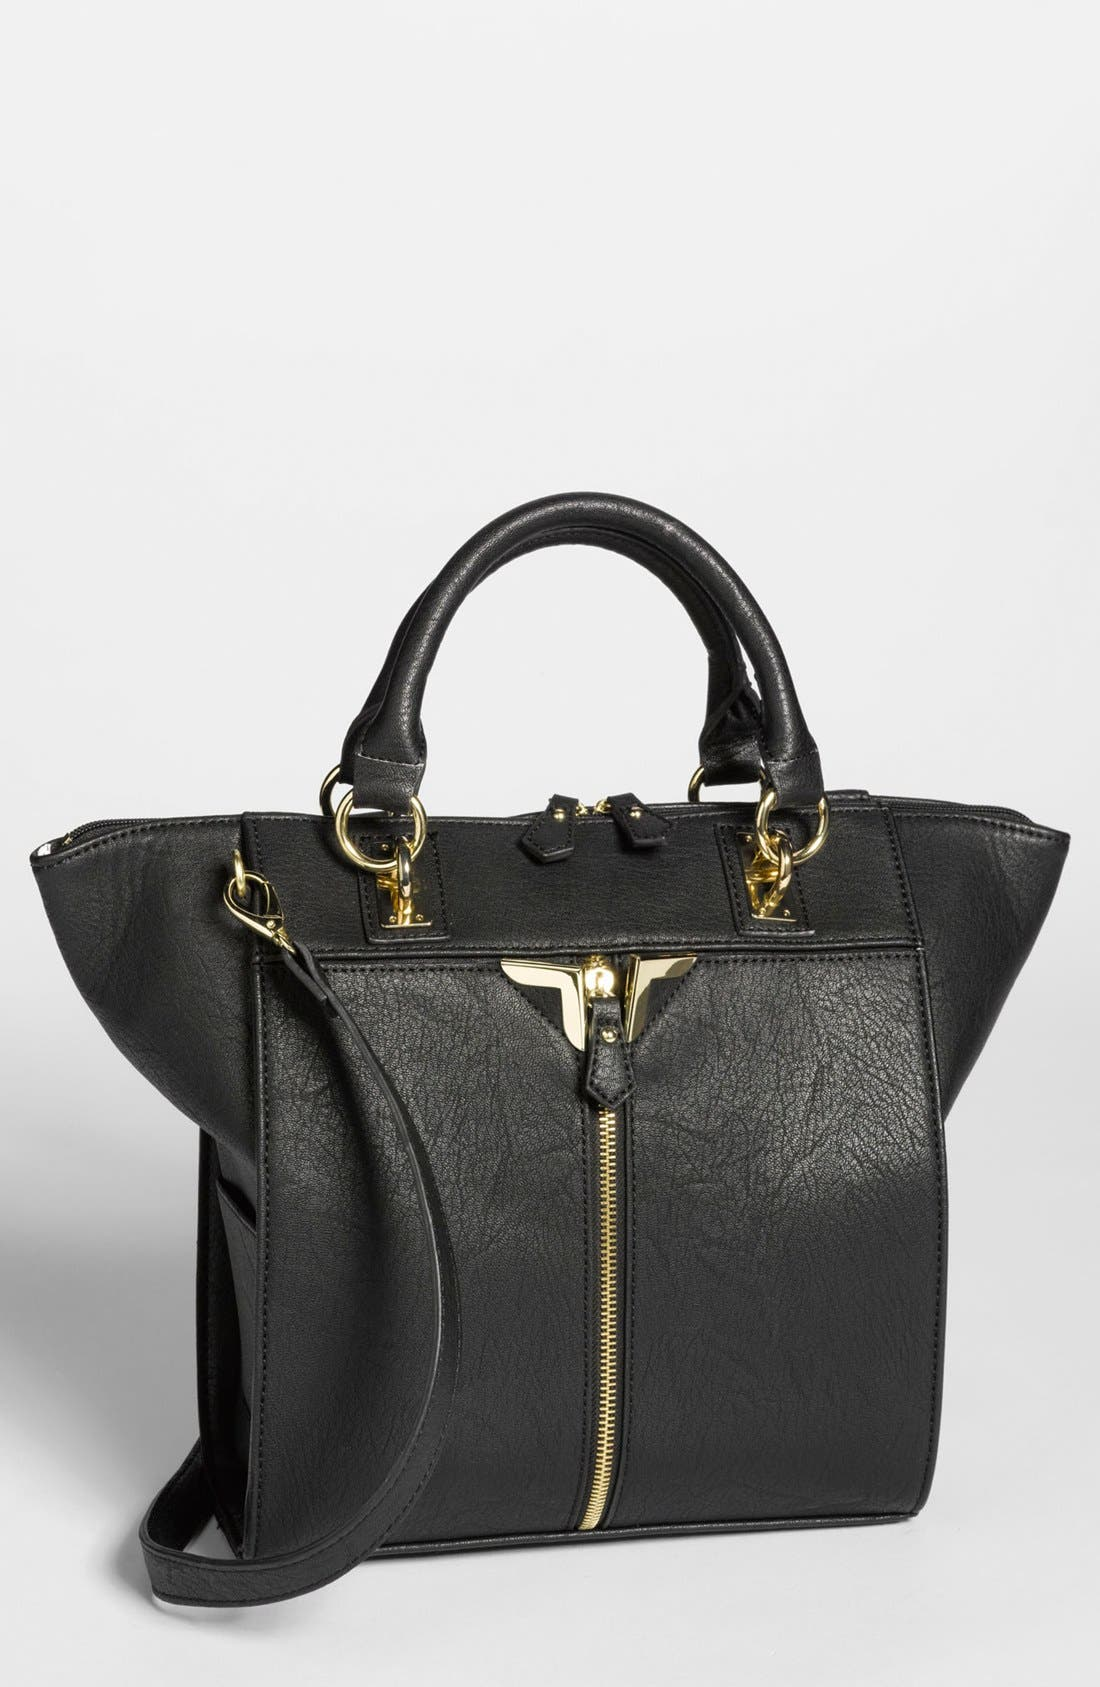 Main Image - Danielle Nicole 'Alexa' Faux Leather Satchel, Medium